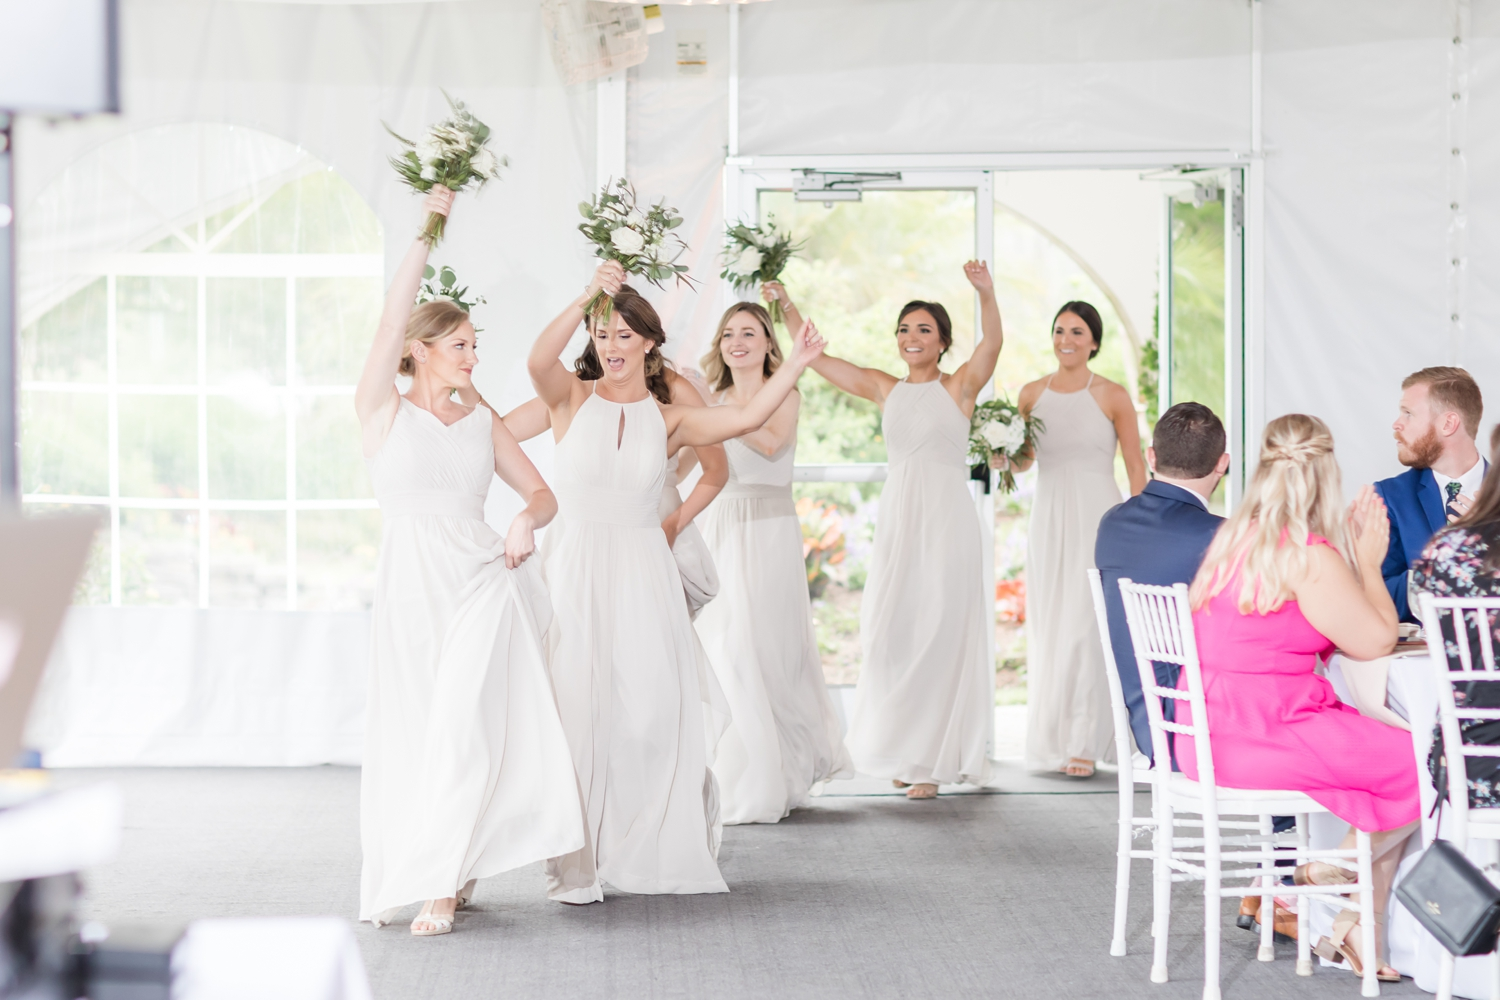 Loved these fun bridal party entrances!